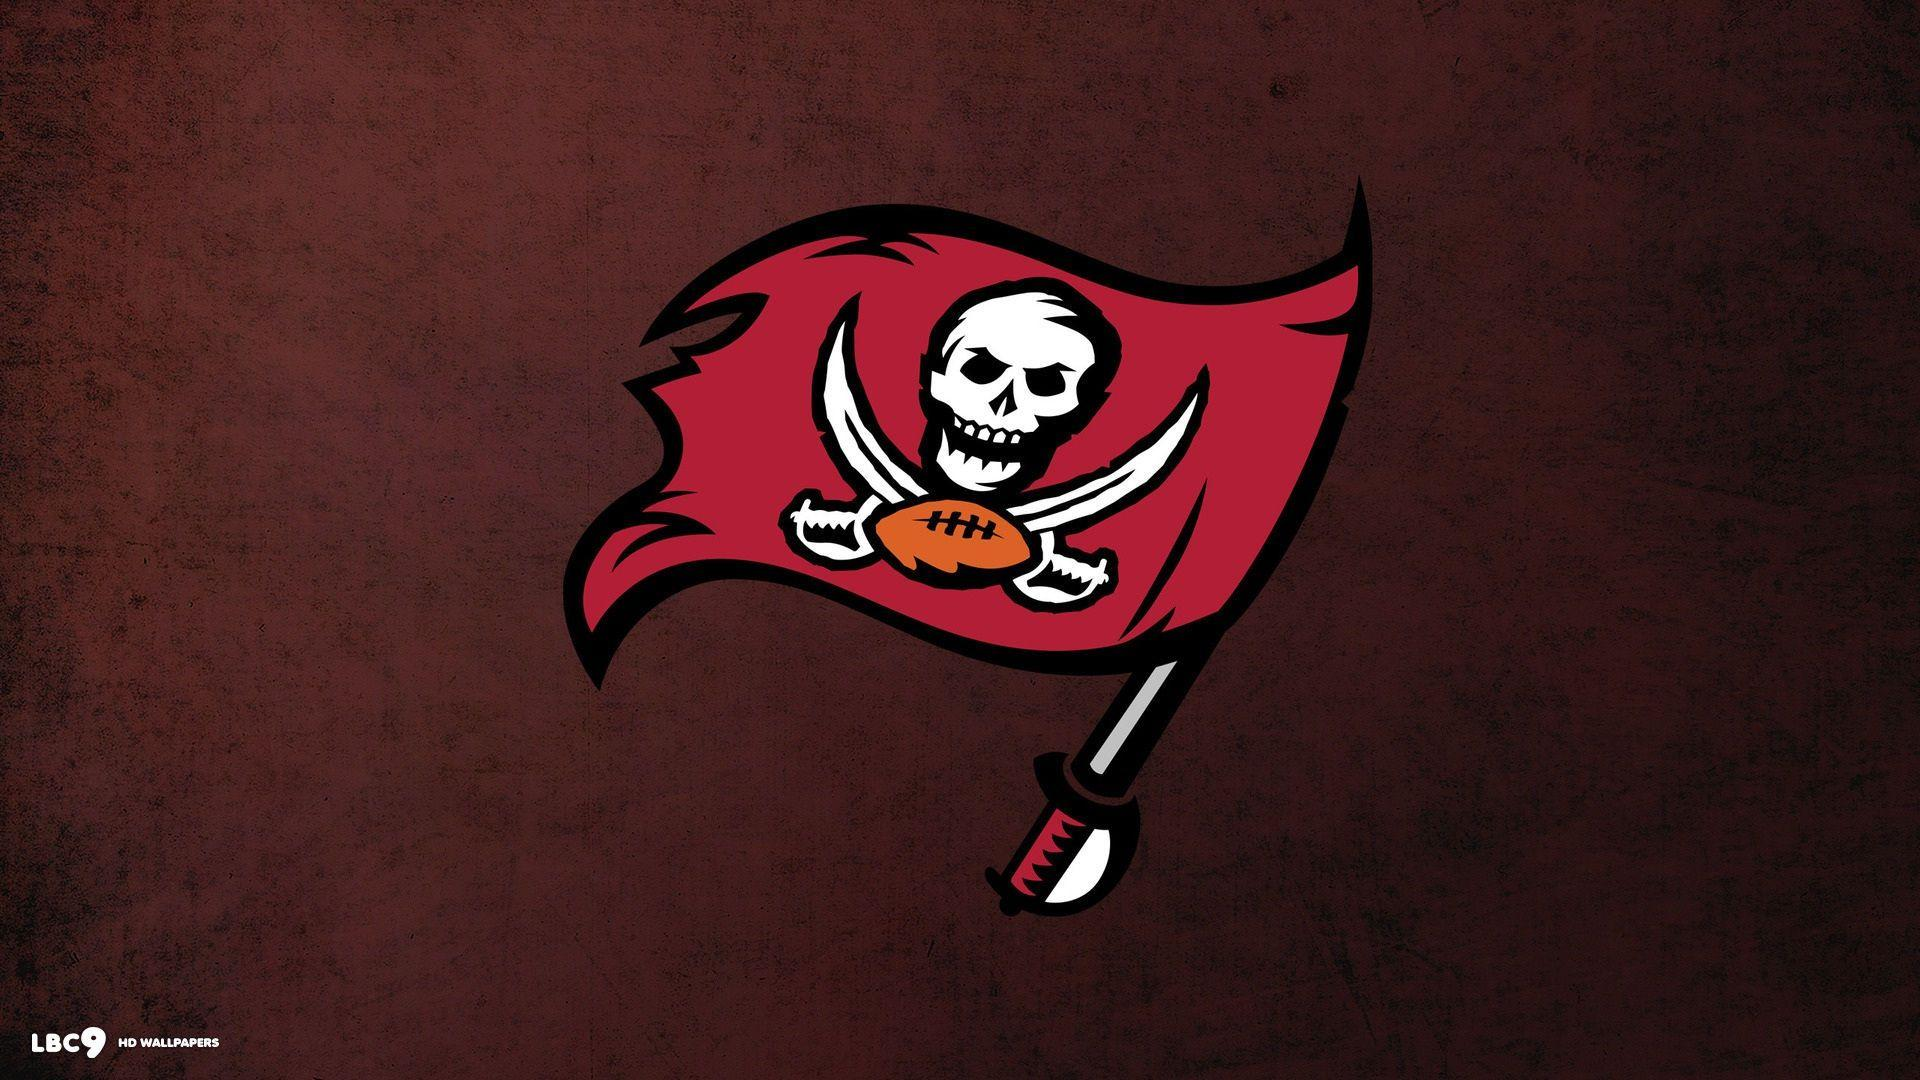 tampa bay buccaneers wallpaper 2/5 | nfl teams hd backgrounds